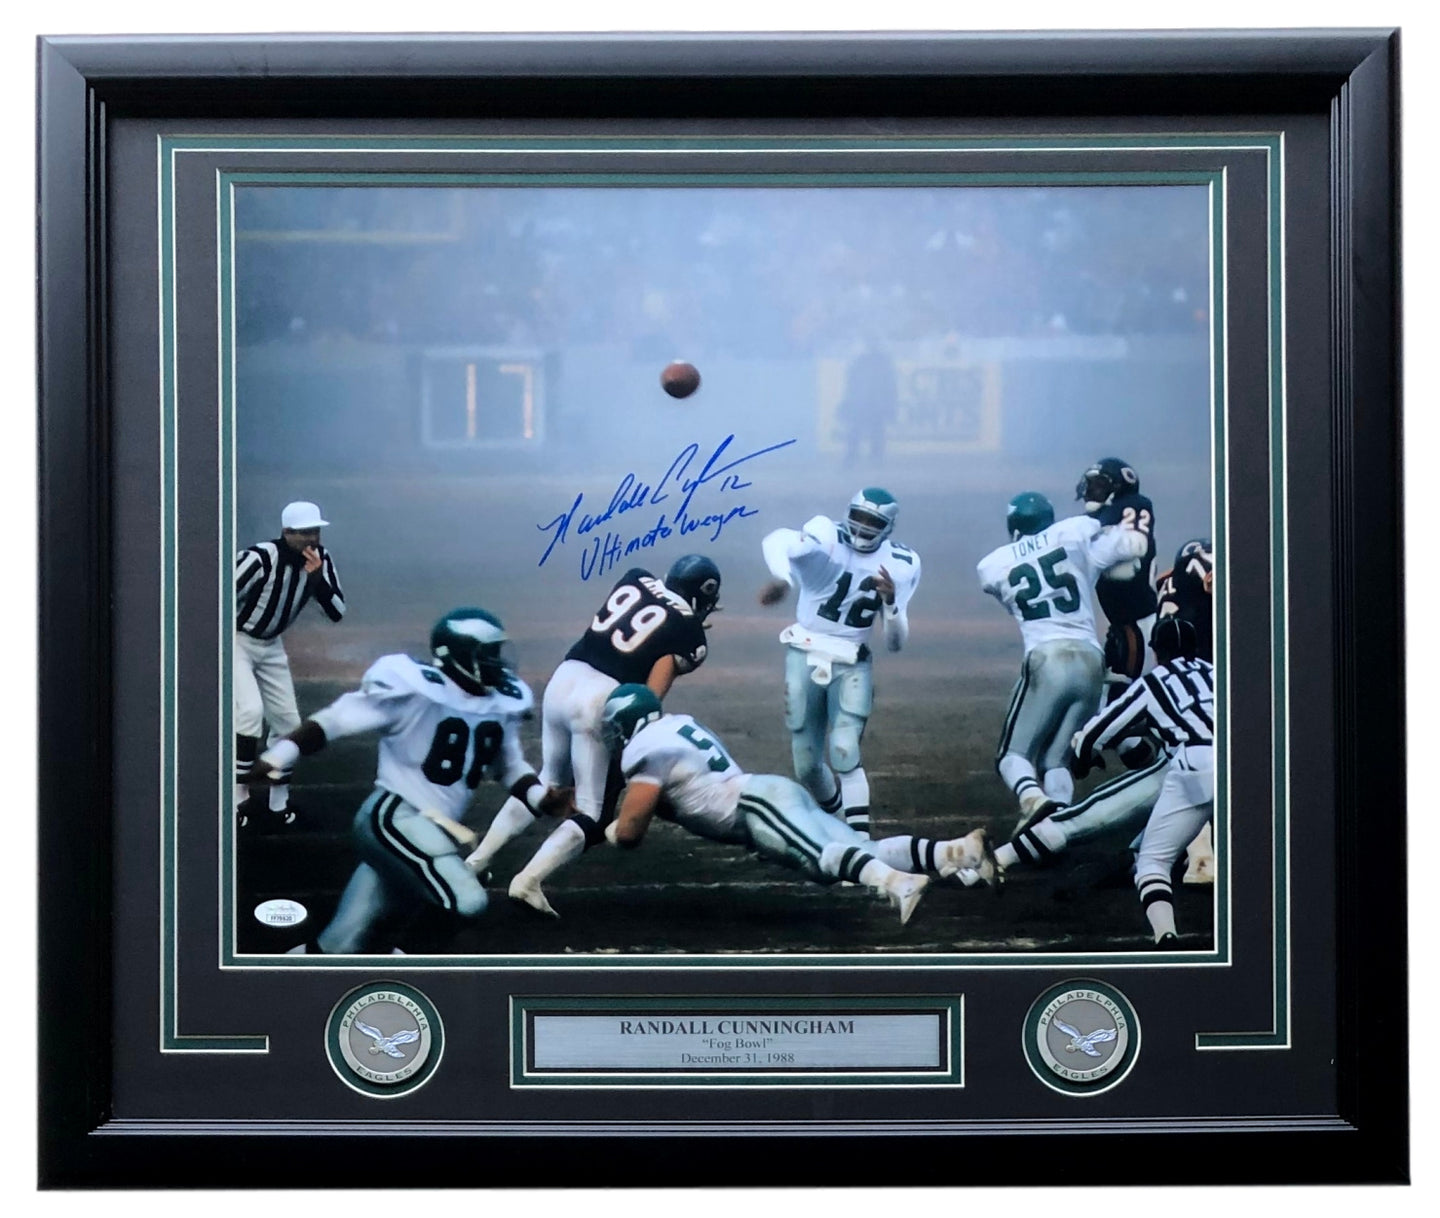 Randall Cunningham Signed Framed Eagles 16x20 Fog Bowl Photo Ultimate Weapon JSA